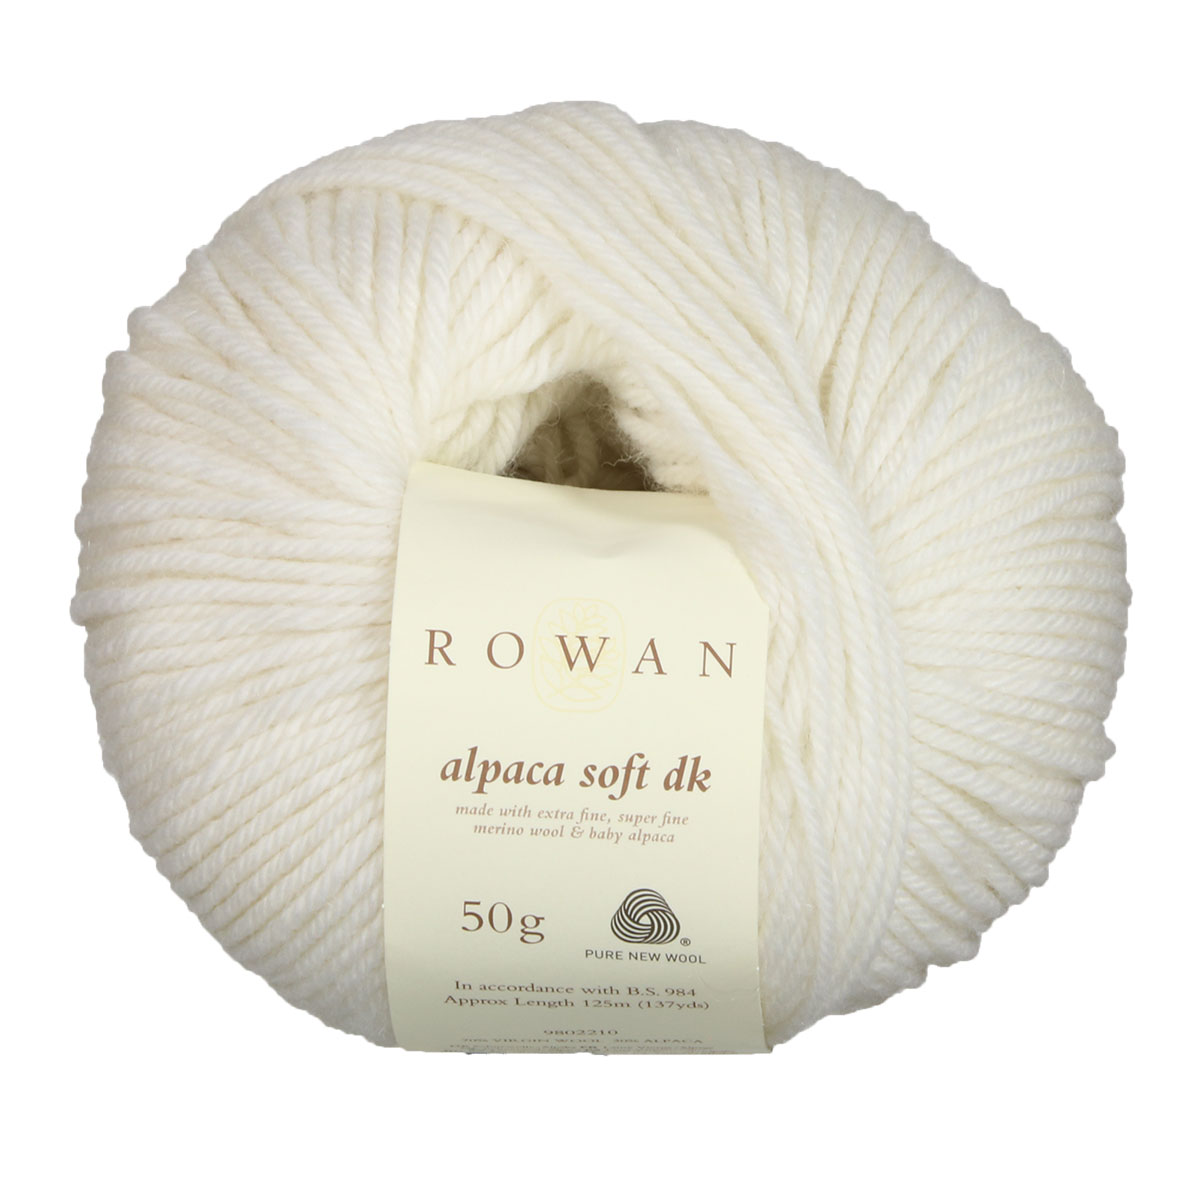 f8a67d1a9 Rowan Alpaca Soft DK Yarn - 201 Simply White at Jimmy Beans Wool